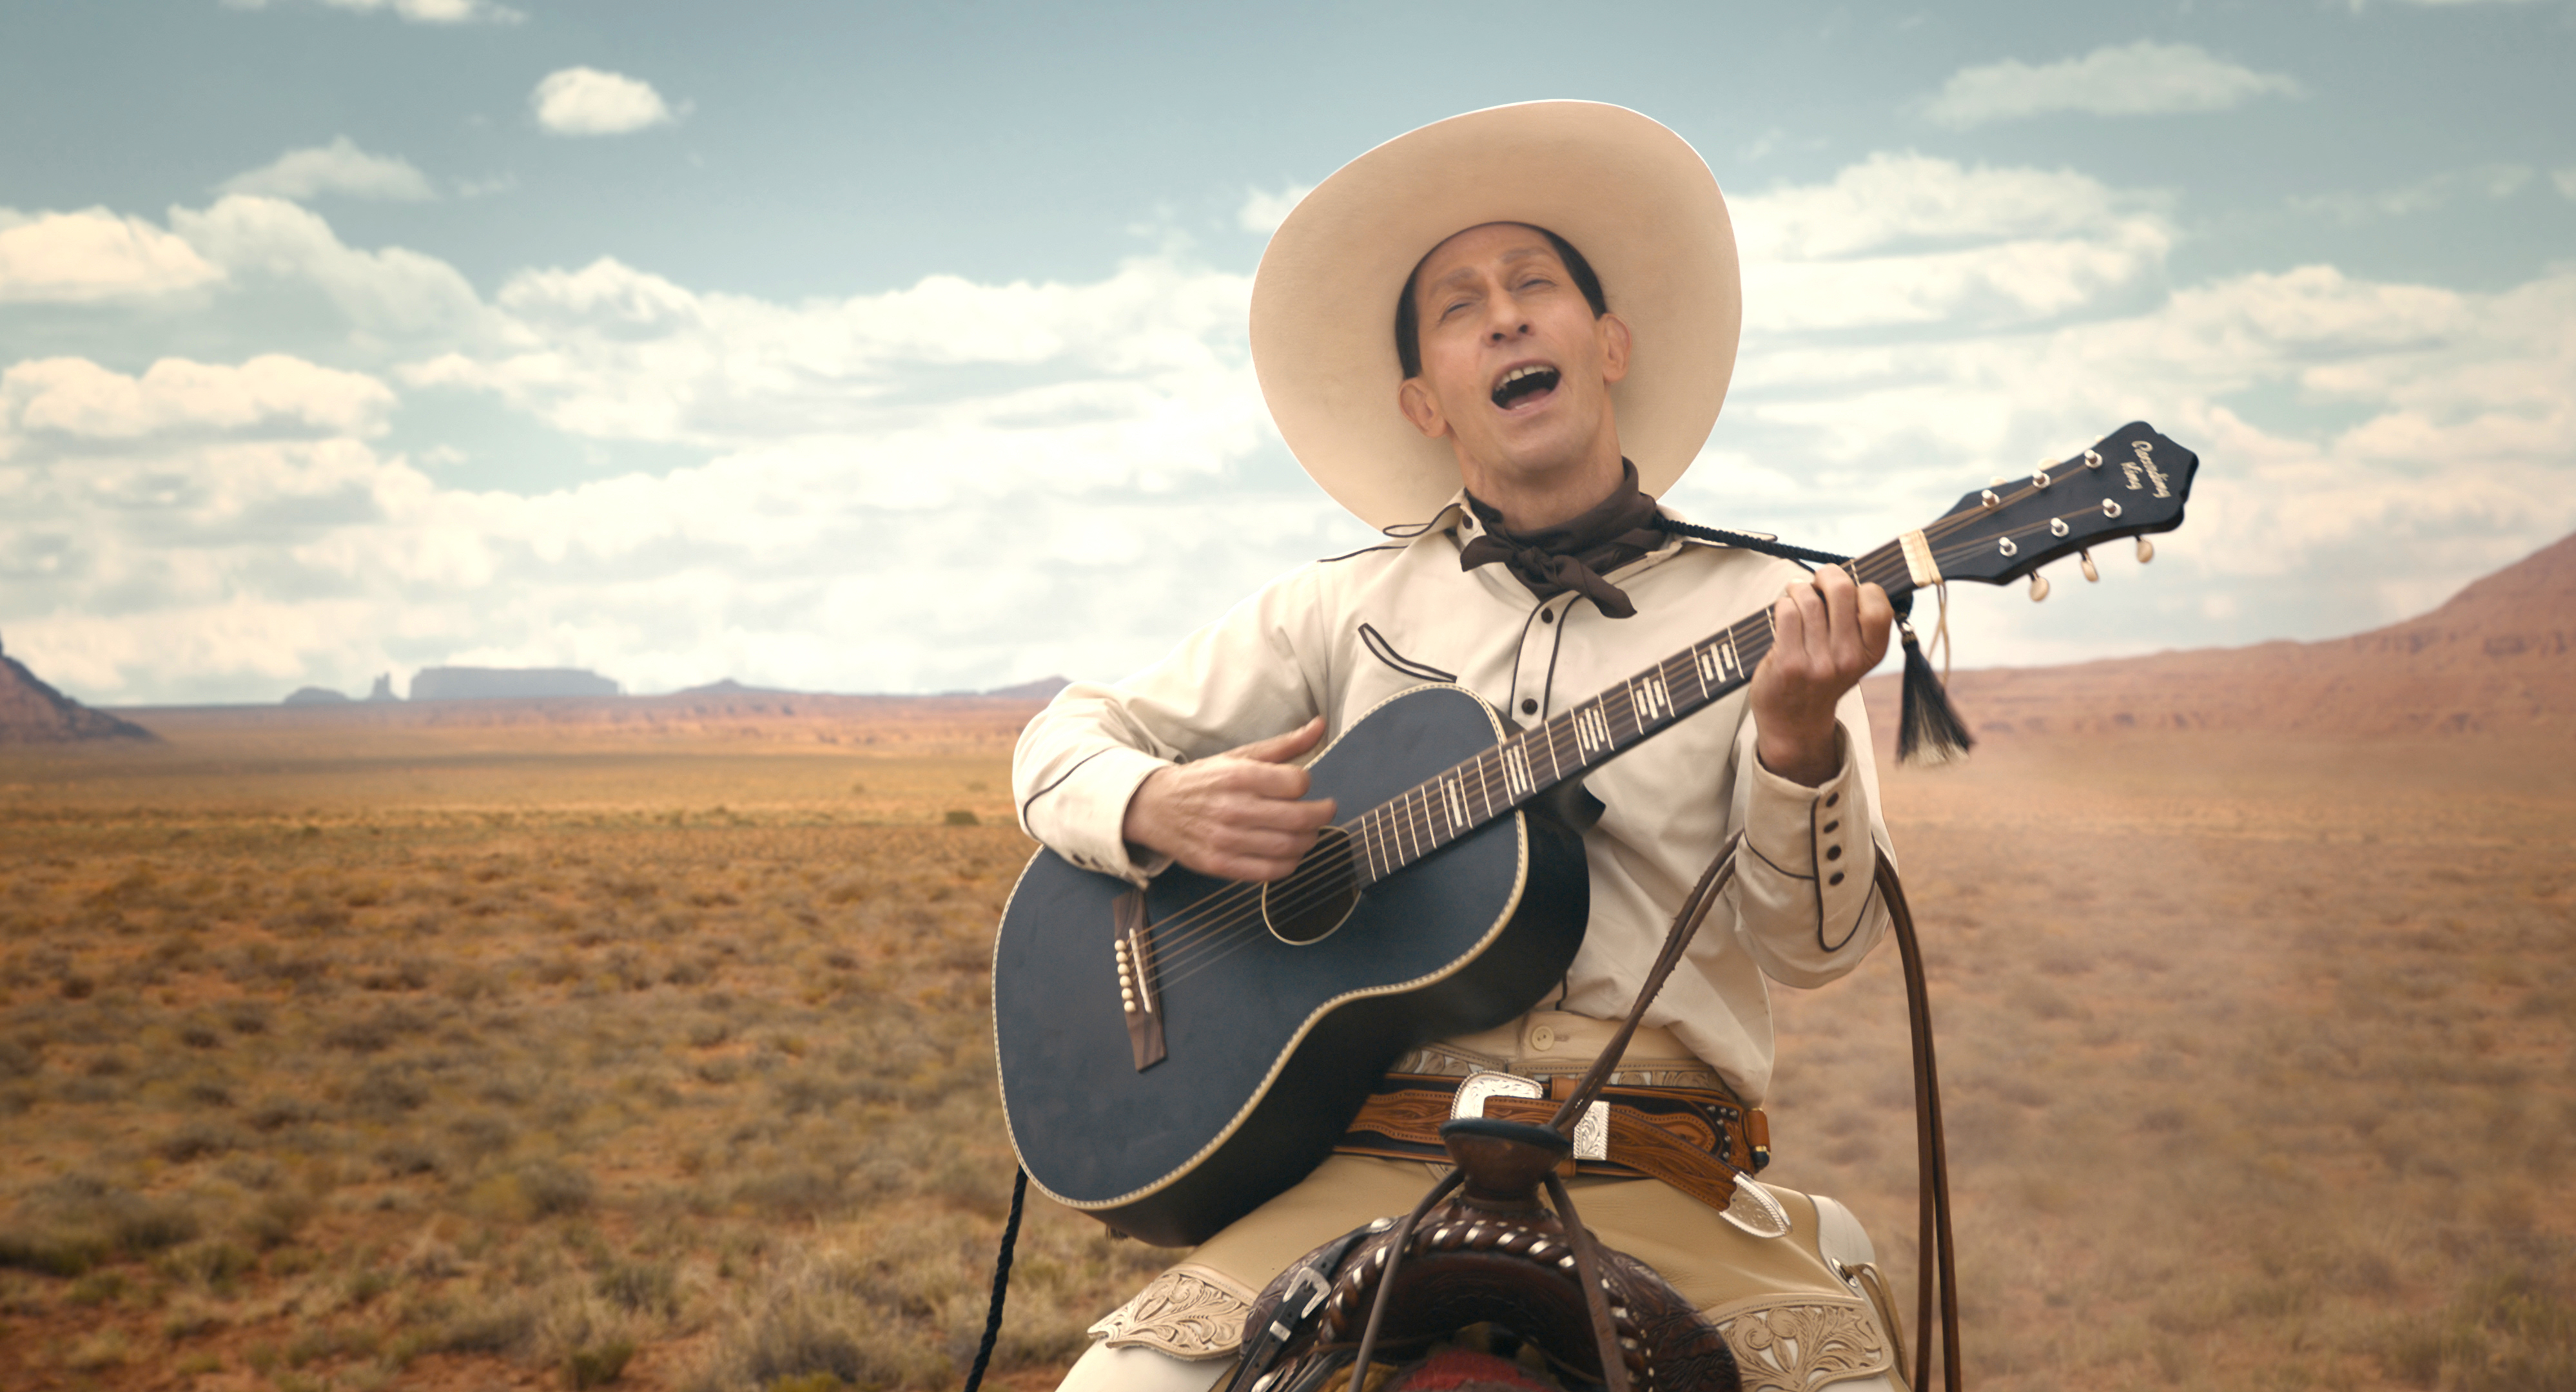 The Coen bros' Buster Scruggs channels Red Dead Redemption 2's side missions